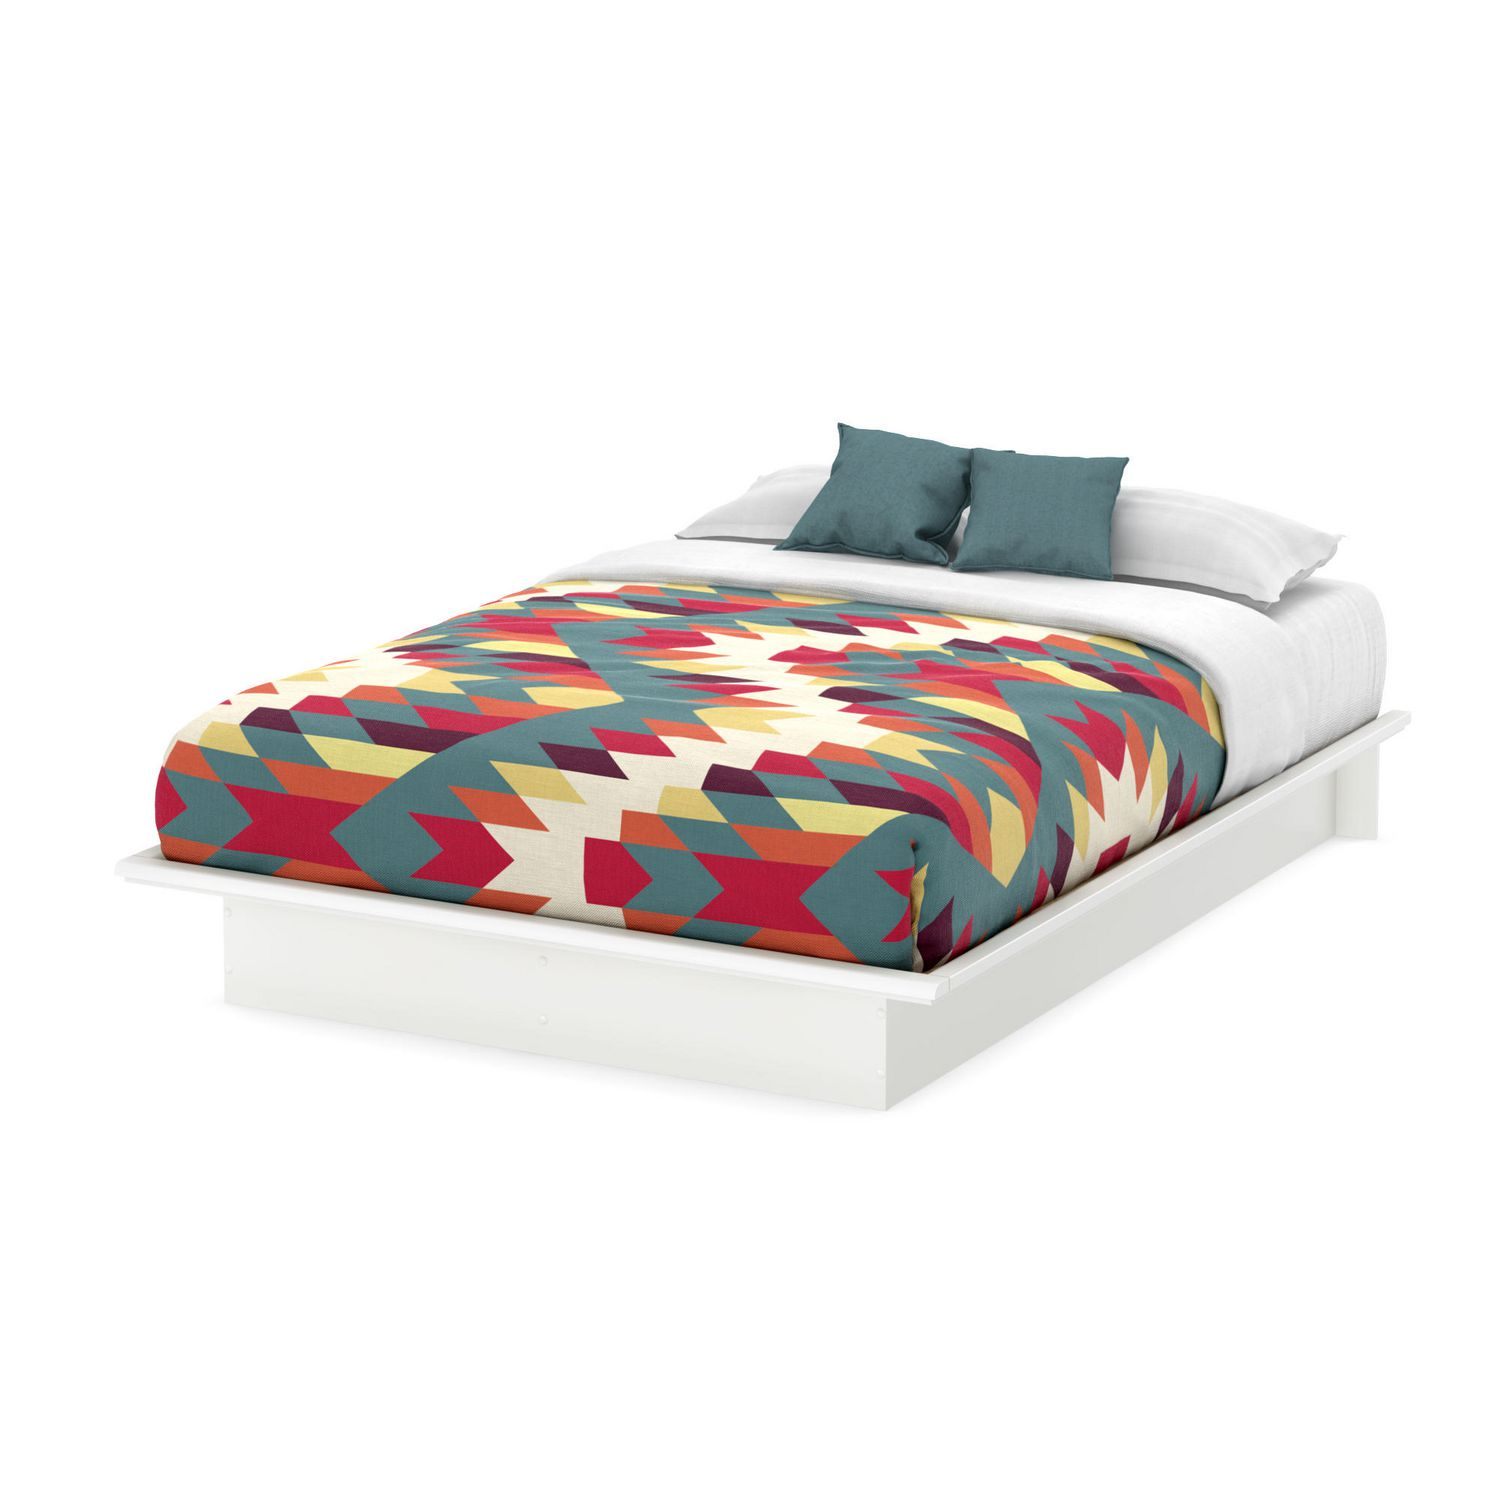 South Shore Bedroom Furniture South Shore Soho Collection Queen Platform Bed Walmartca